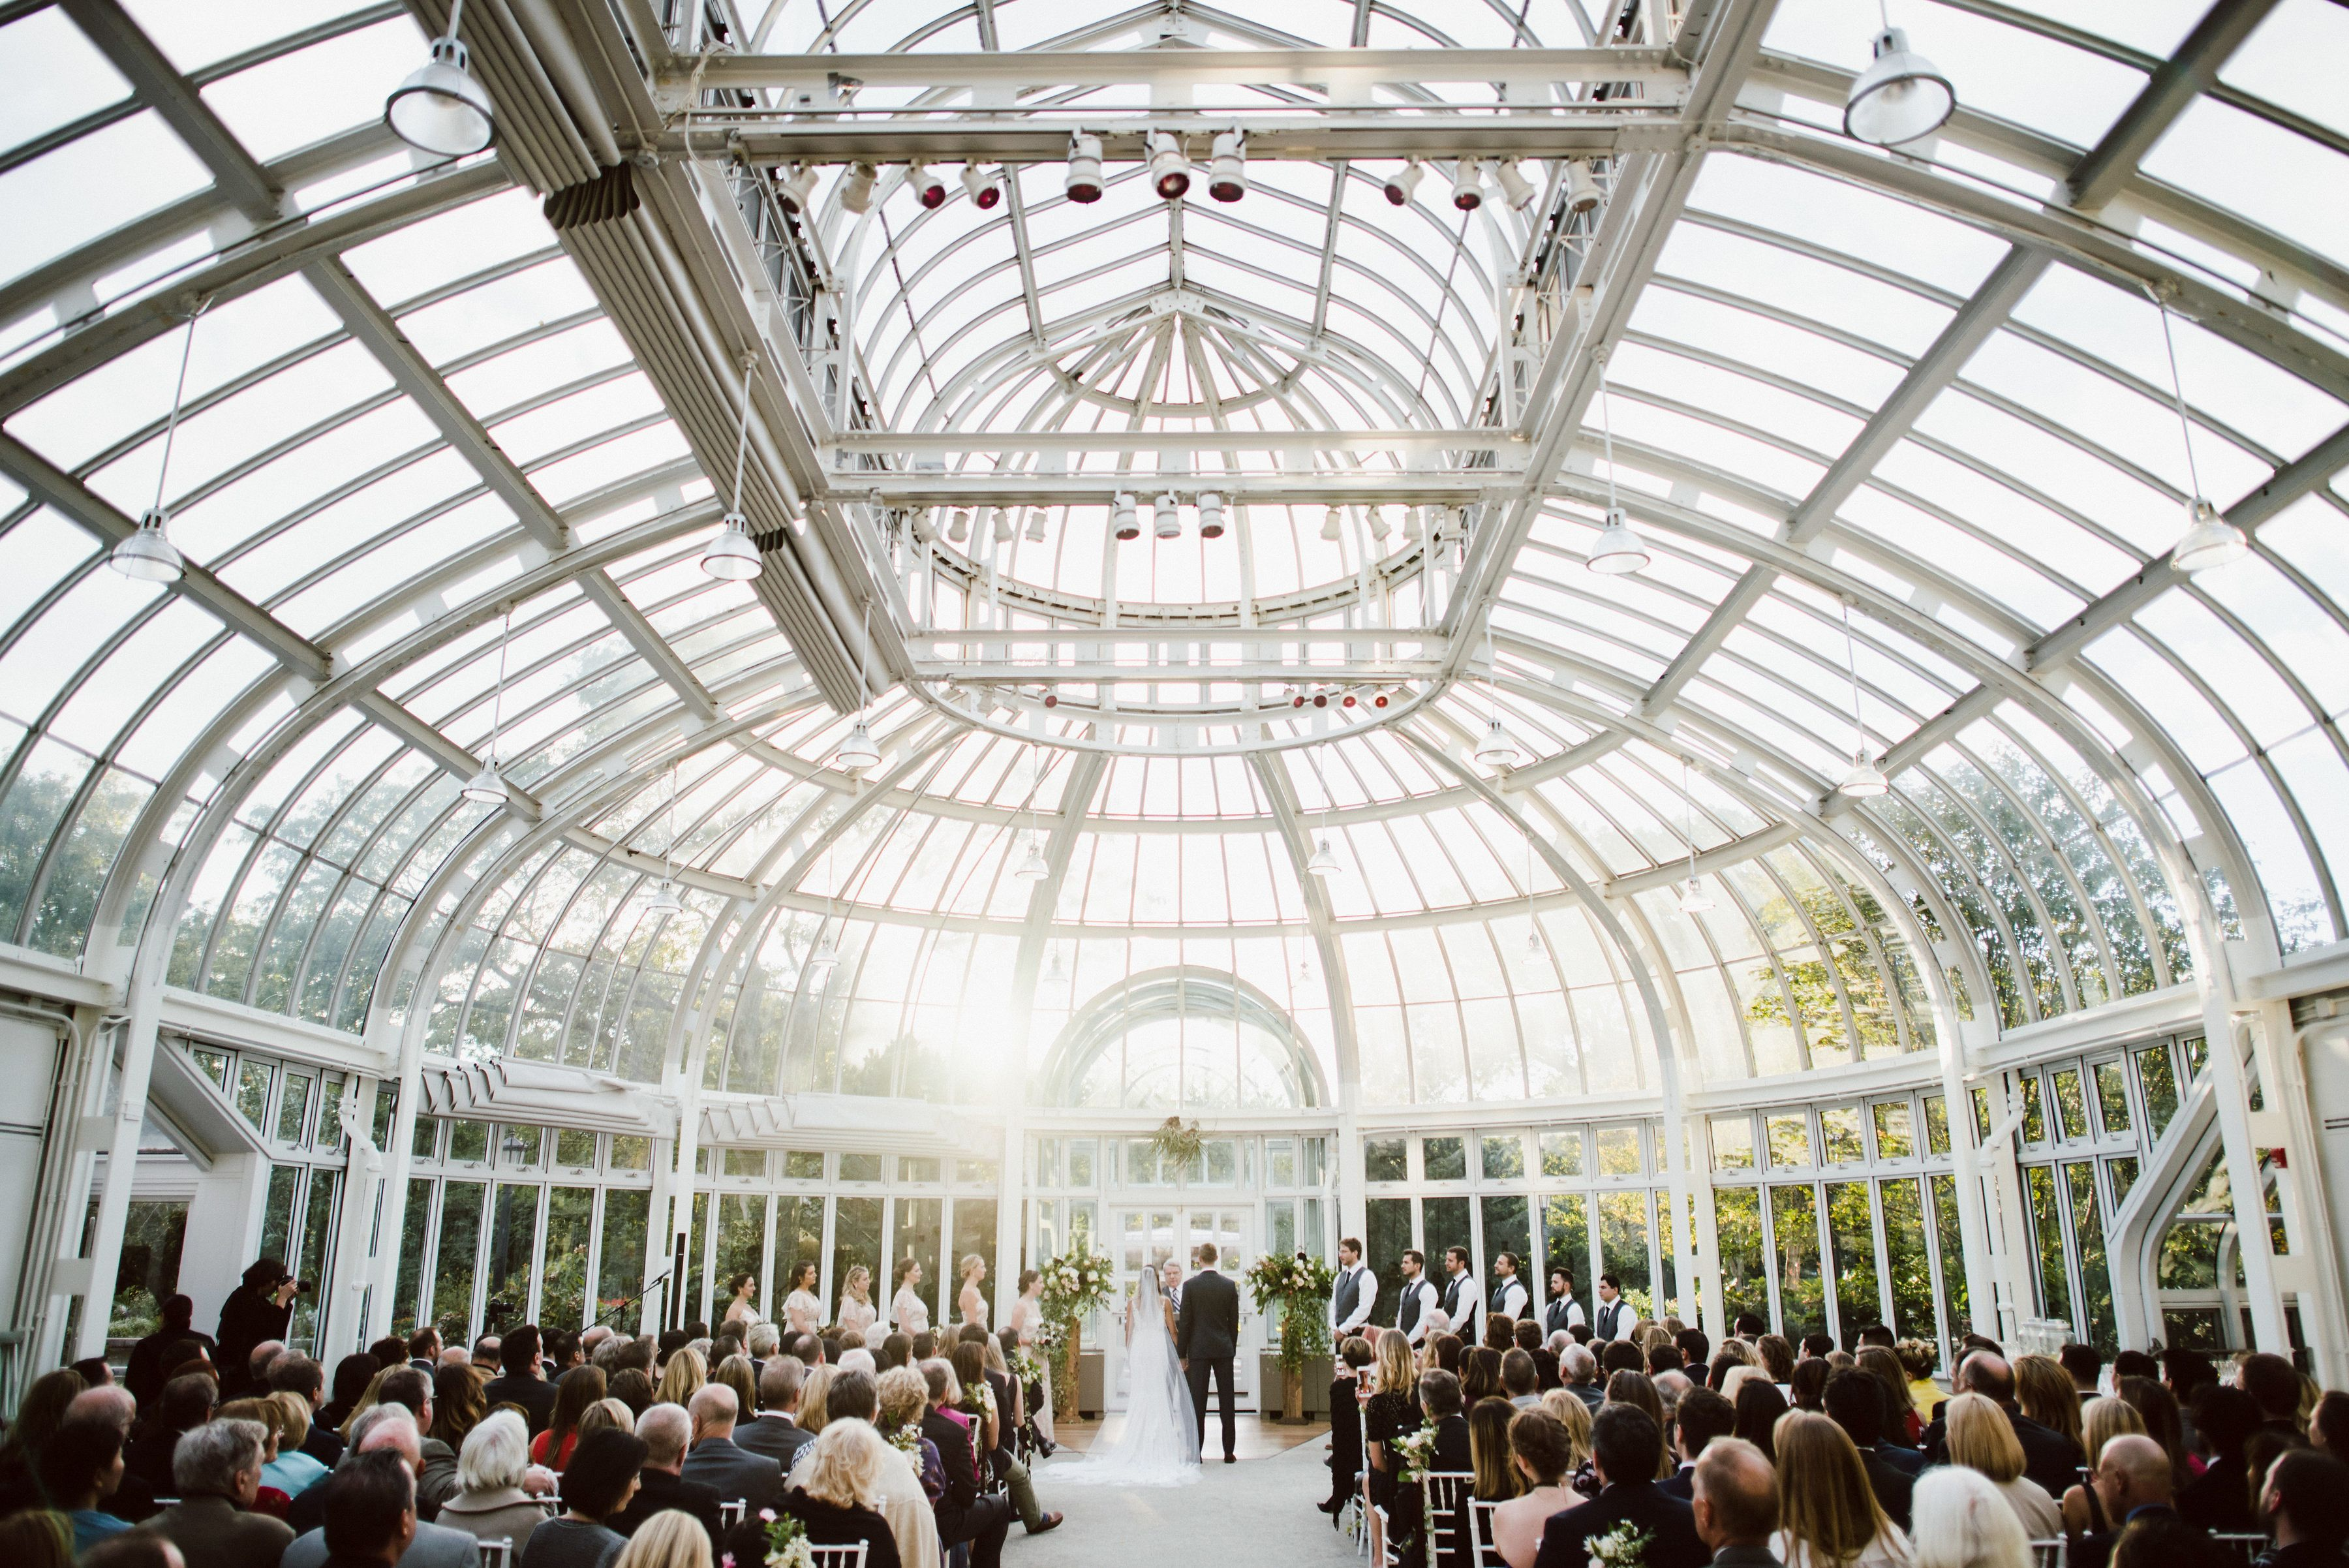 Garden grounds offer romantic backgrounds for your wedding and engagement photographs, as well as sites for simple wedding ceremonies. Brooklyn Botanic Garden Wedding Revisi Id